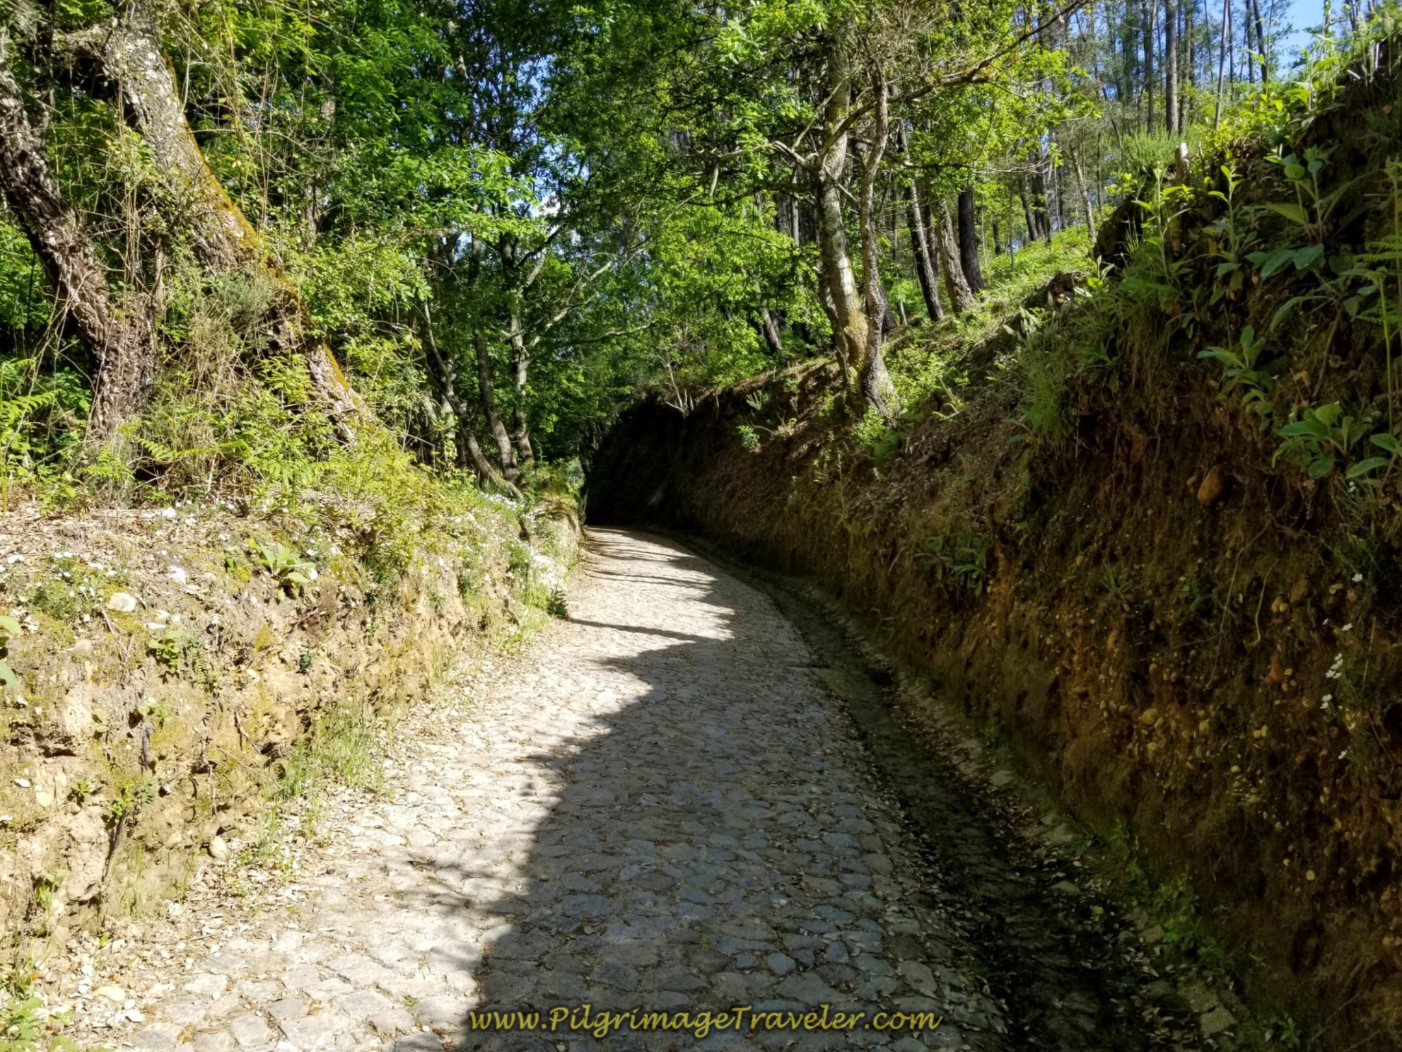 Onward on Tree-Lined Cobblestone Road to Pedreira on day nineteen on the Central Route of the Portuguese Camino